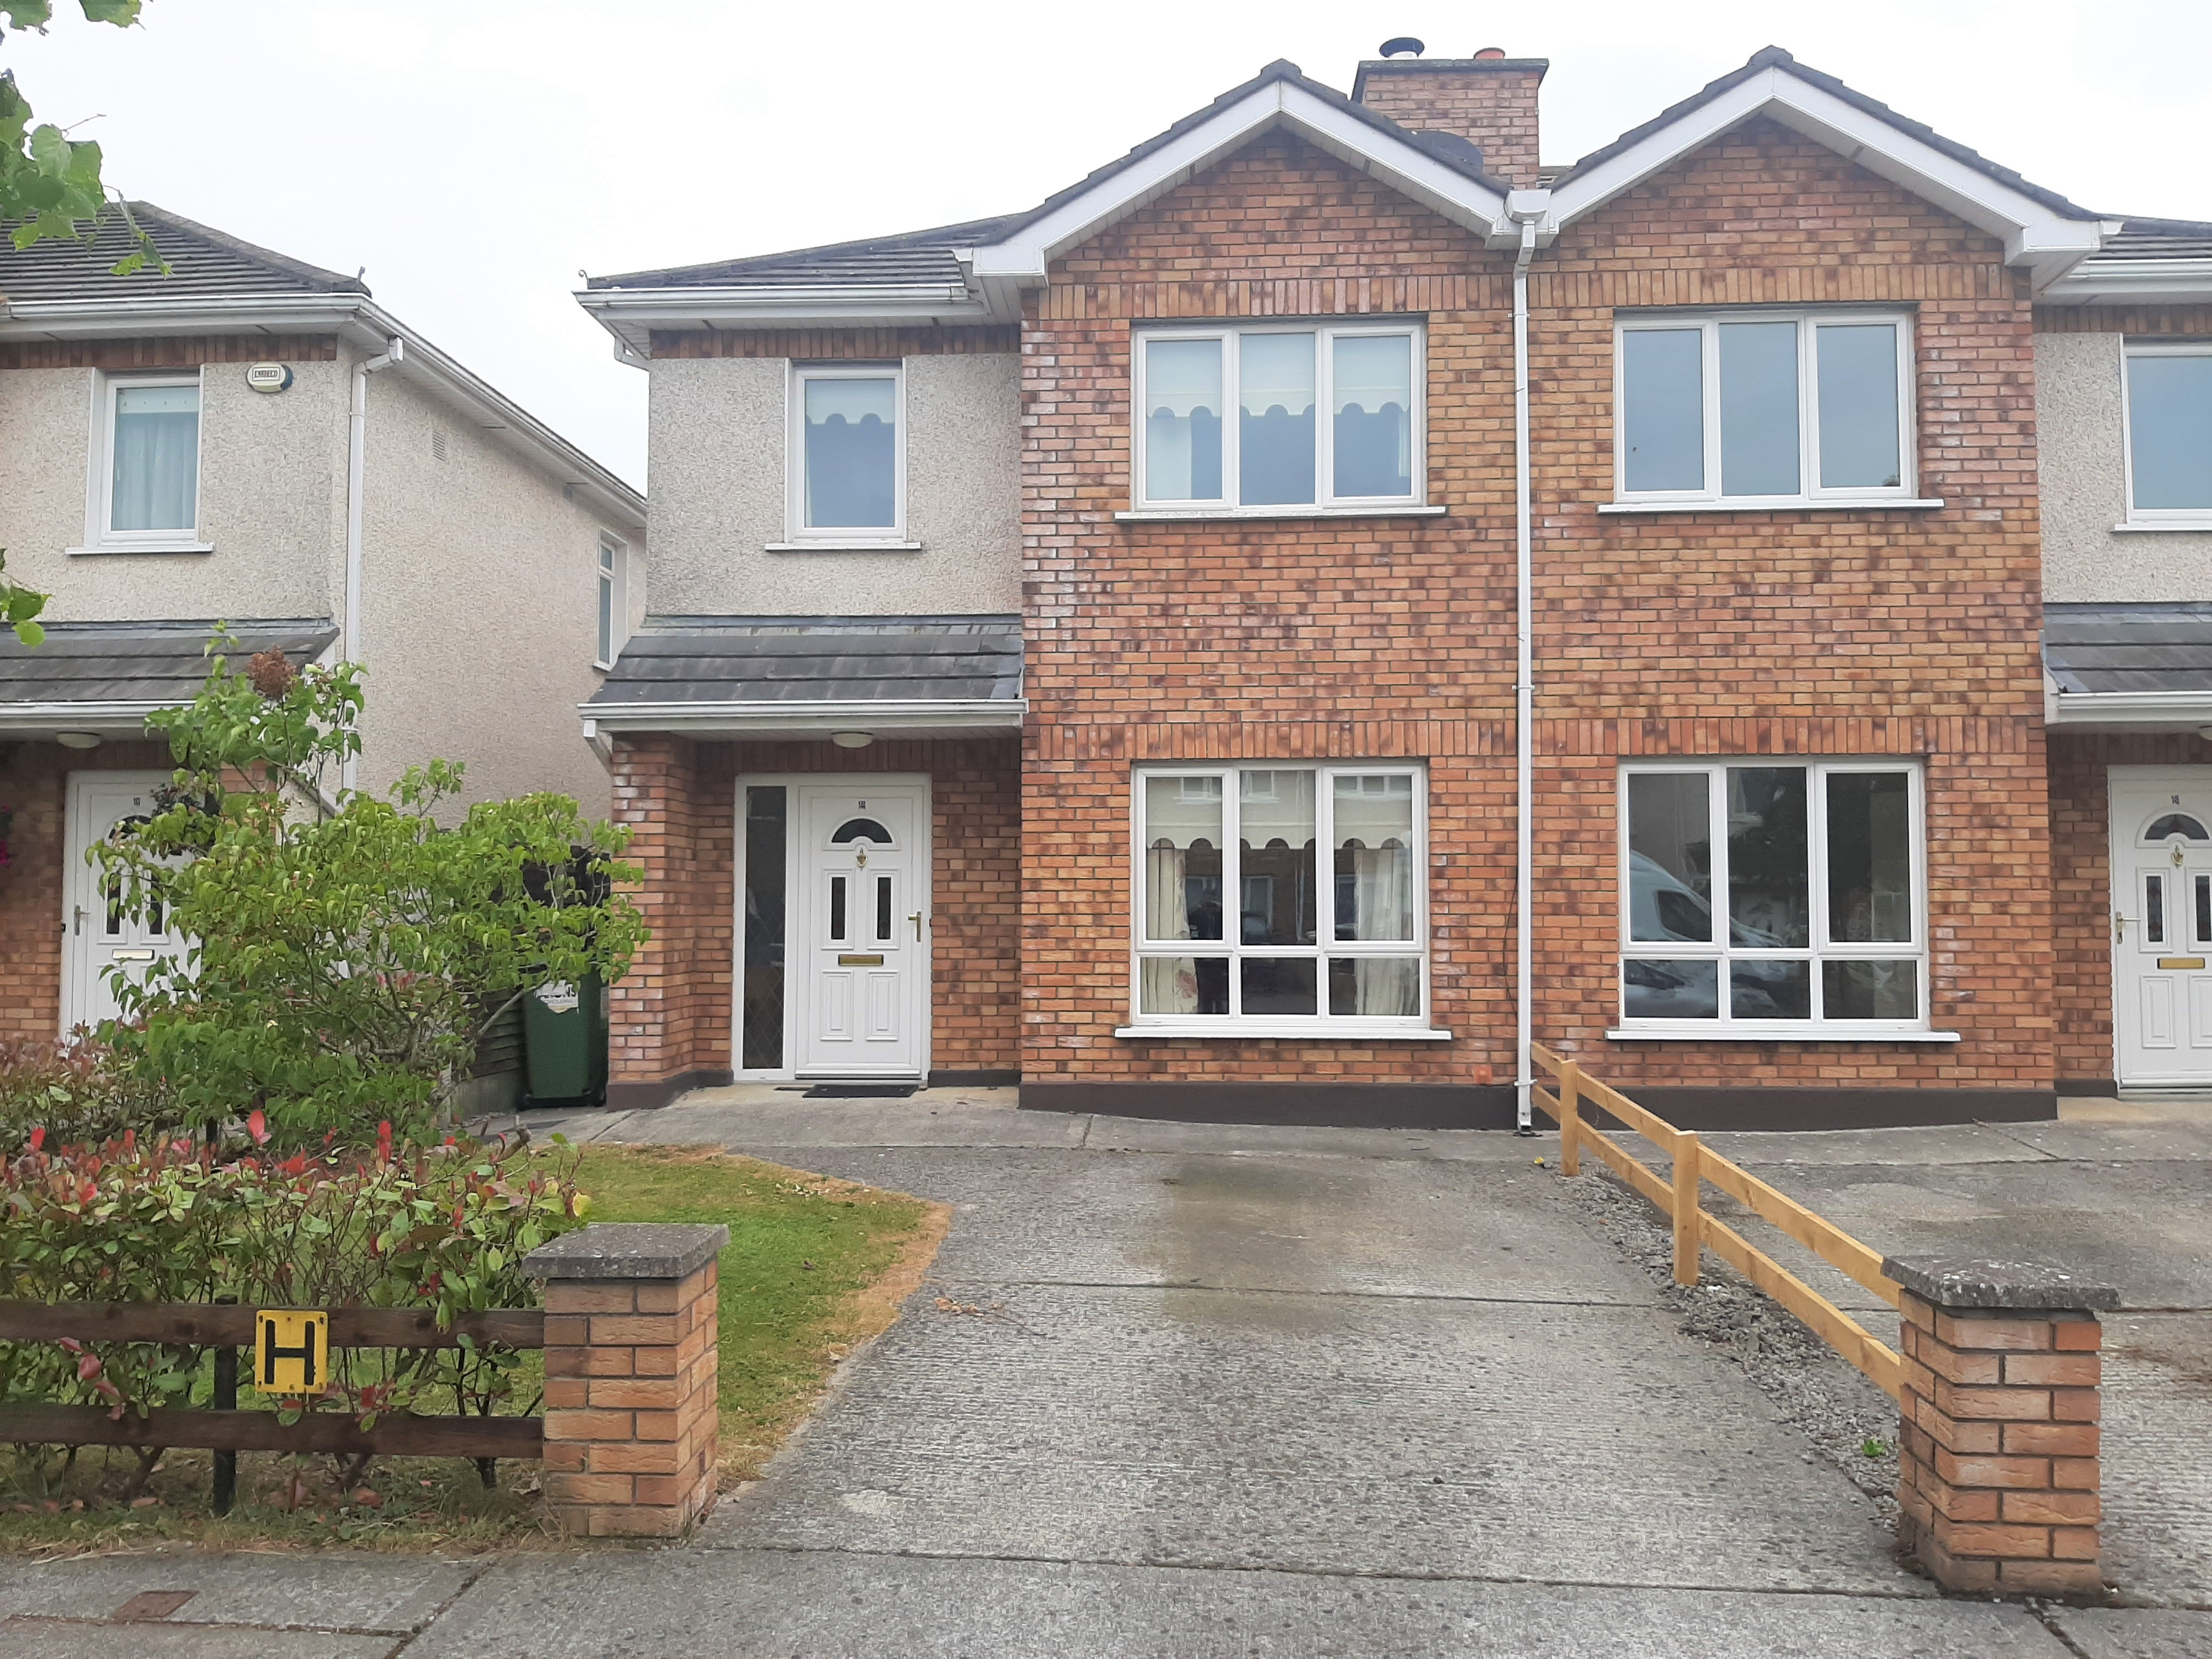 144 The Sycamores, Edenderry, R45 WV34